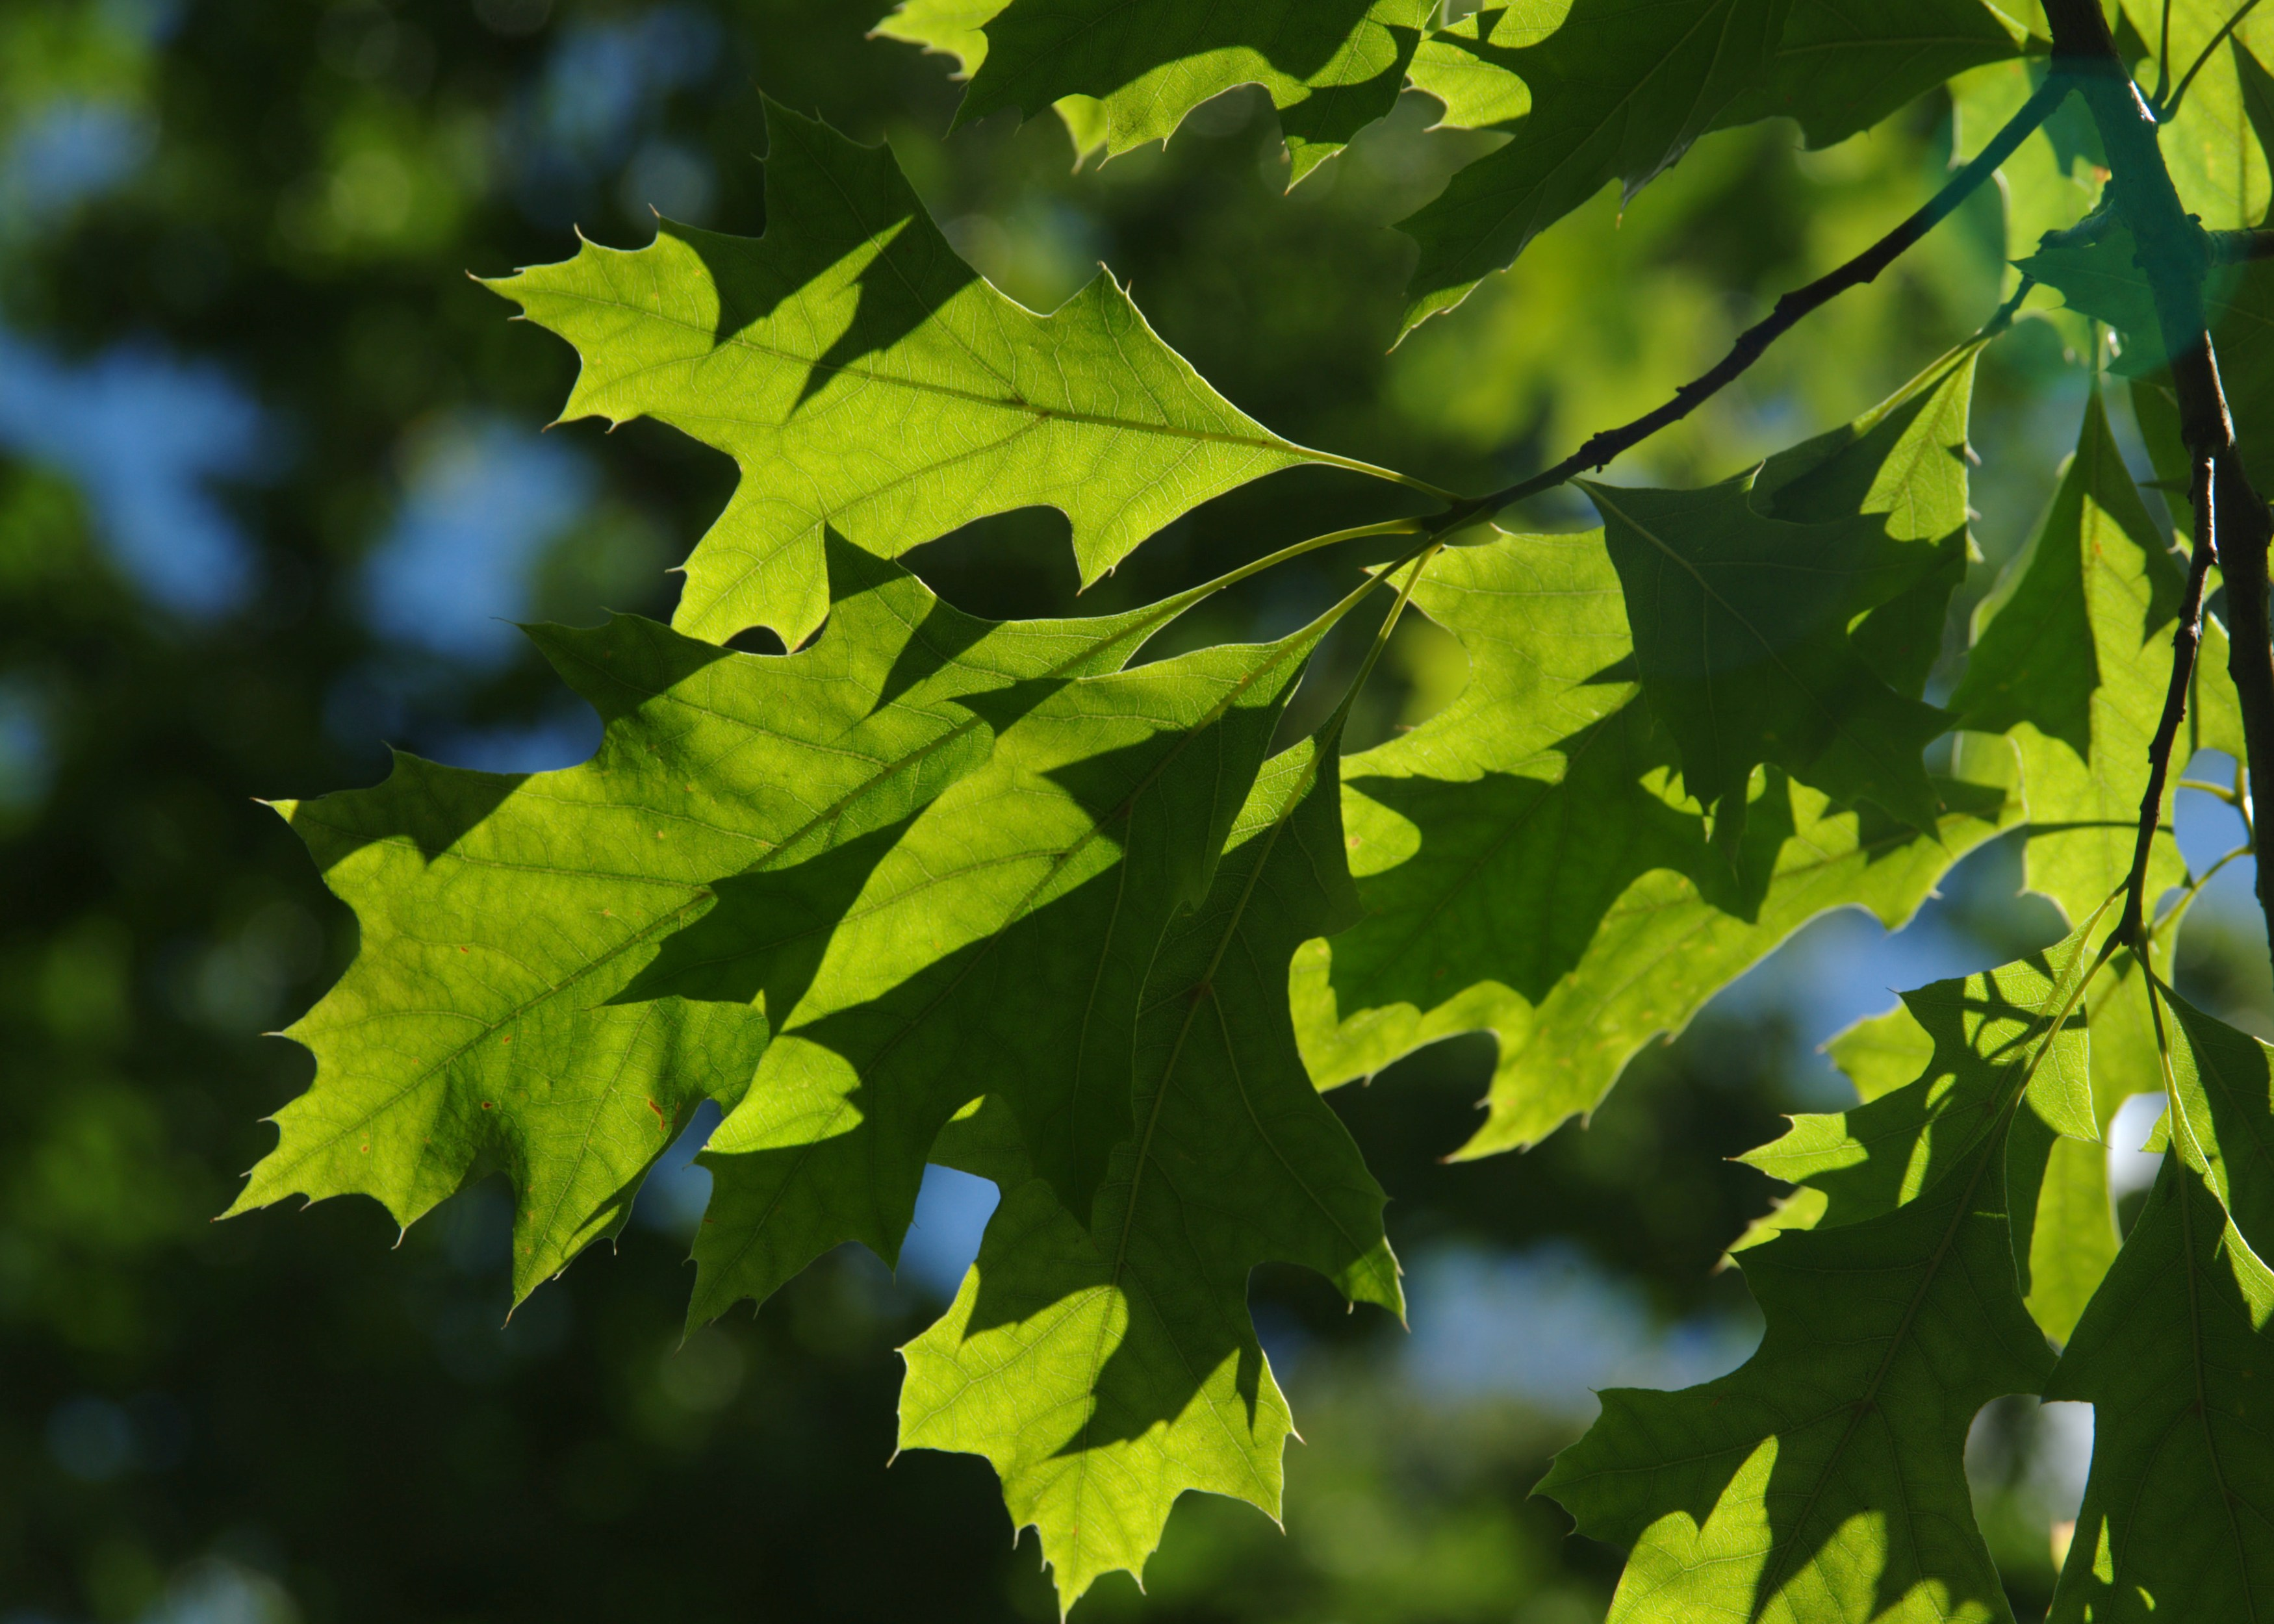 Green leaves of pin oak (Quercus palustris)